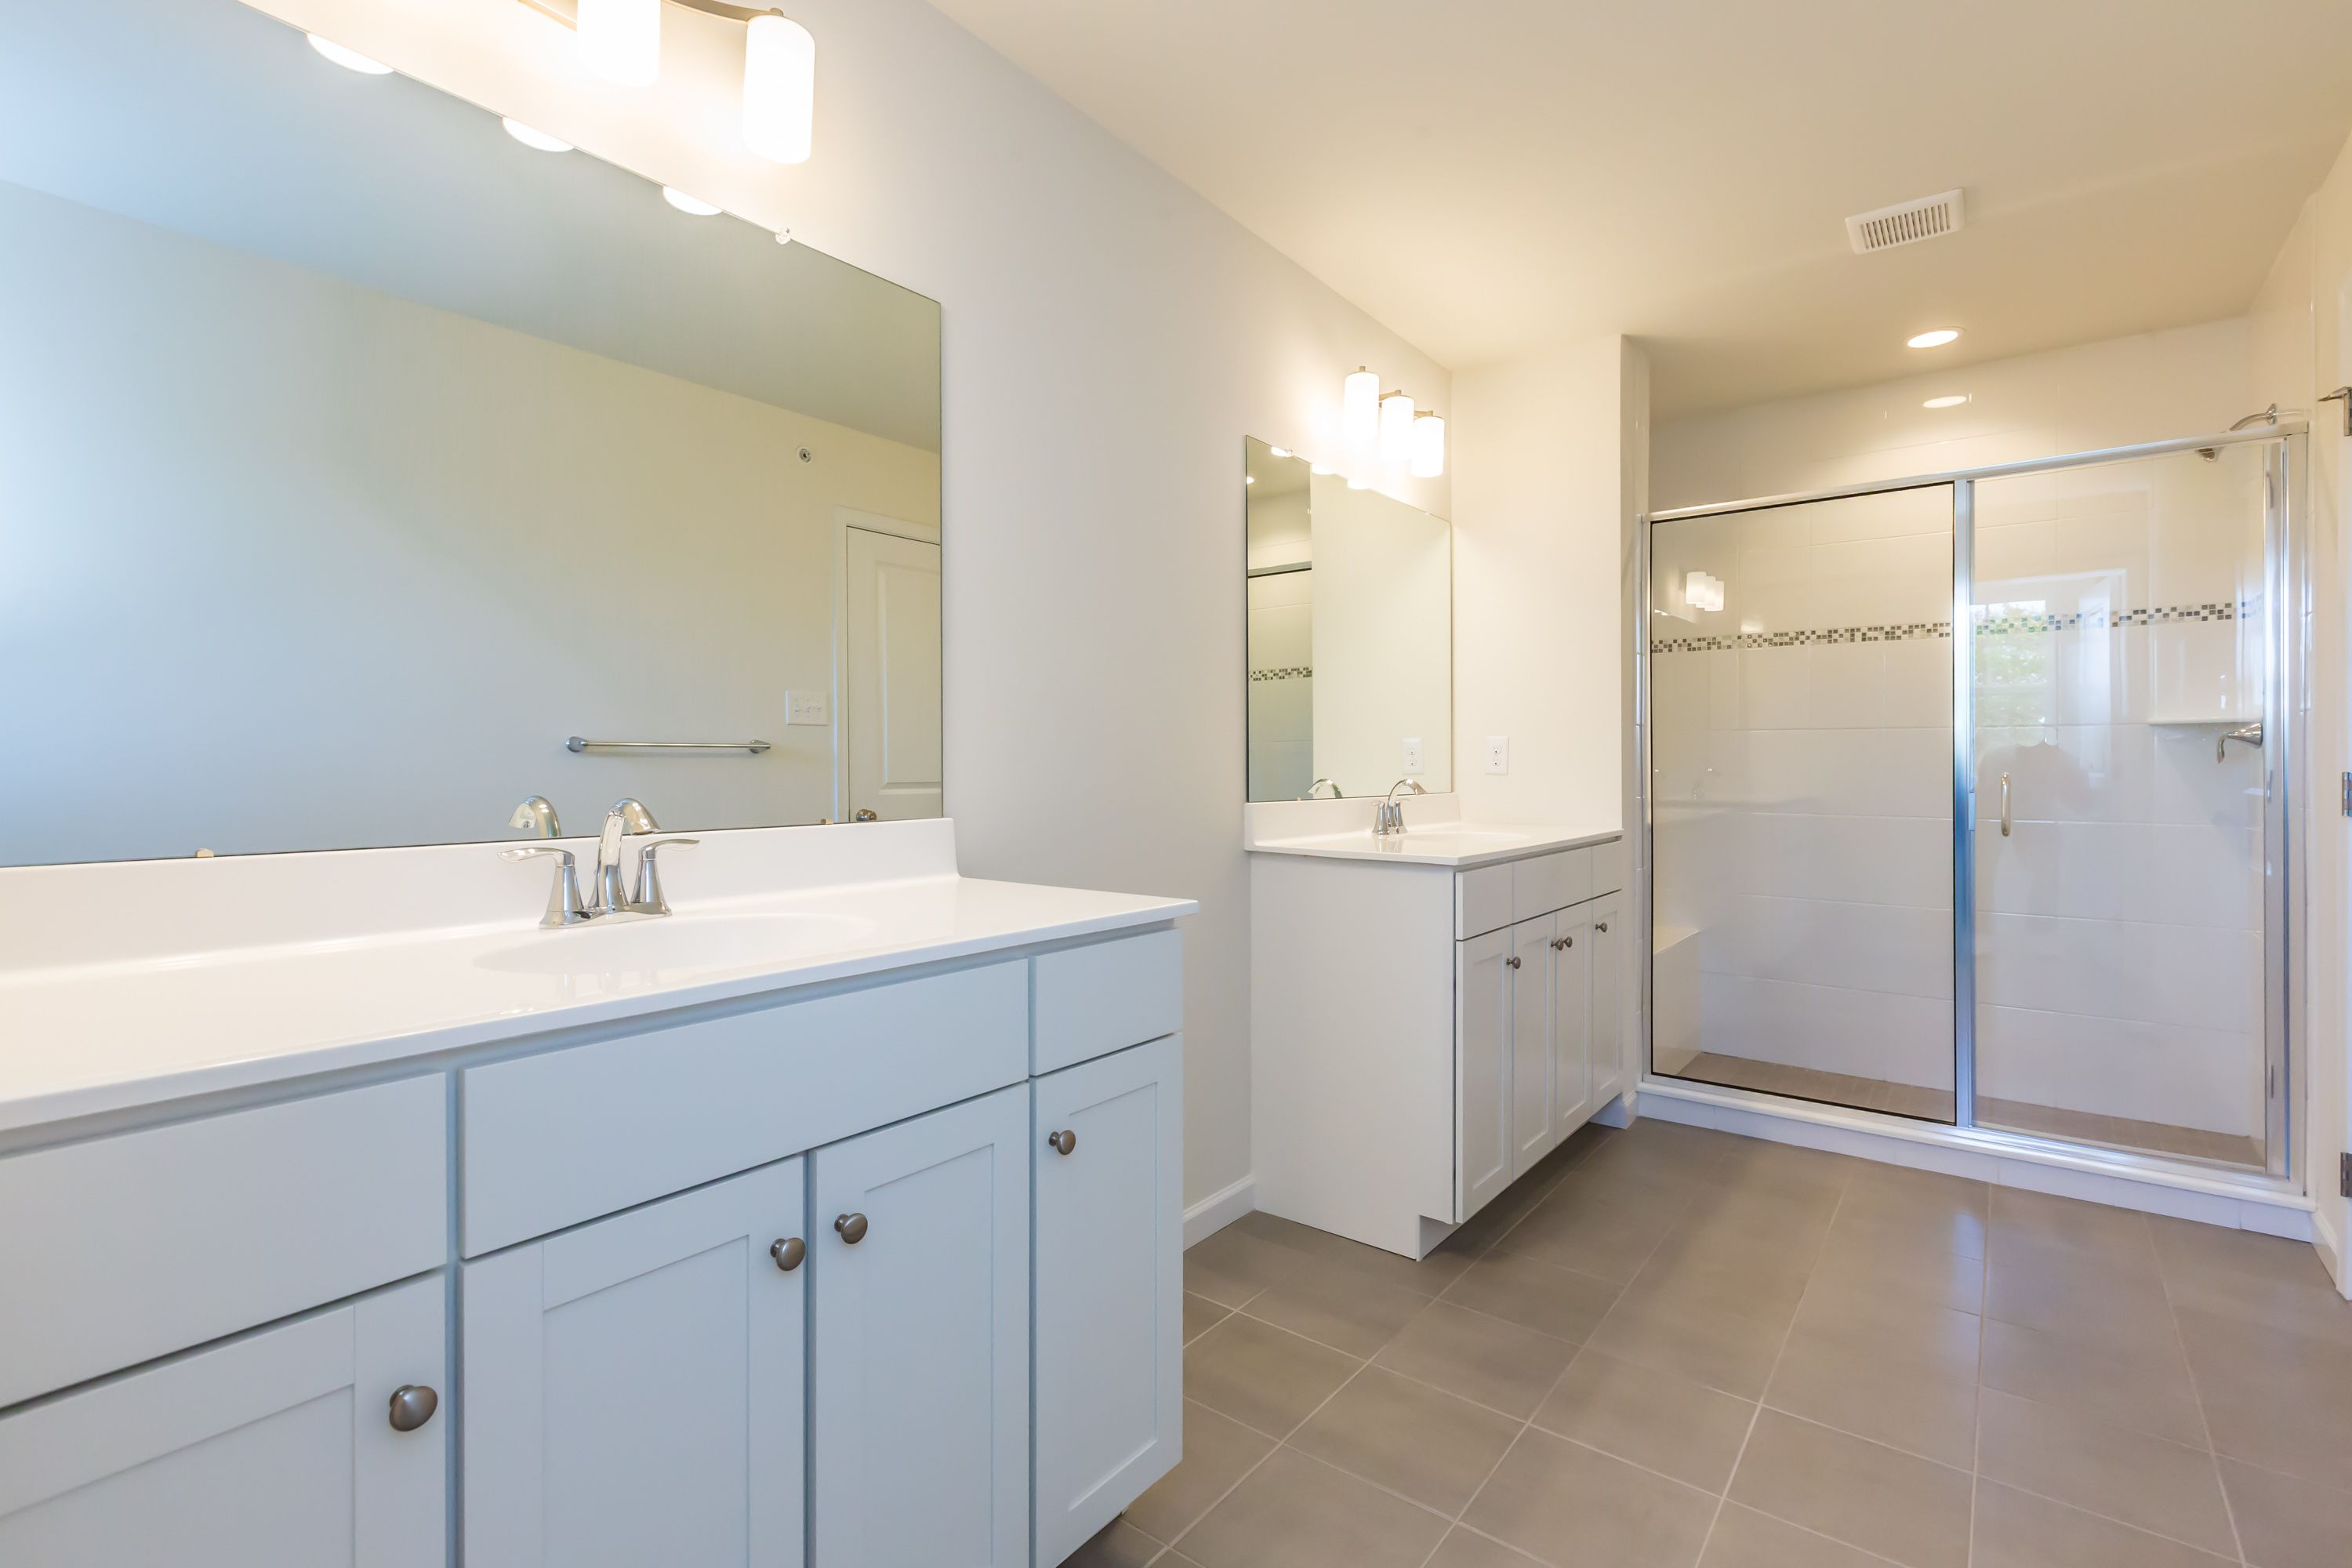 Bathroom featured in the Prestley By Rouse Chamberlin Homes in Philadelphia, PA